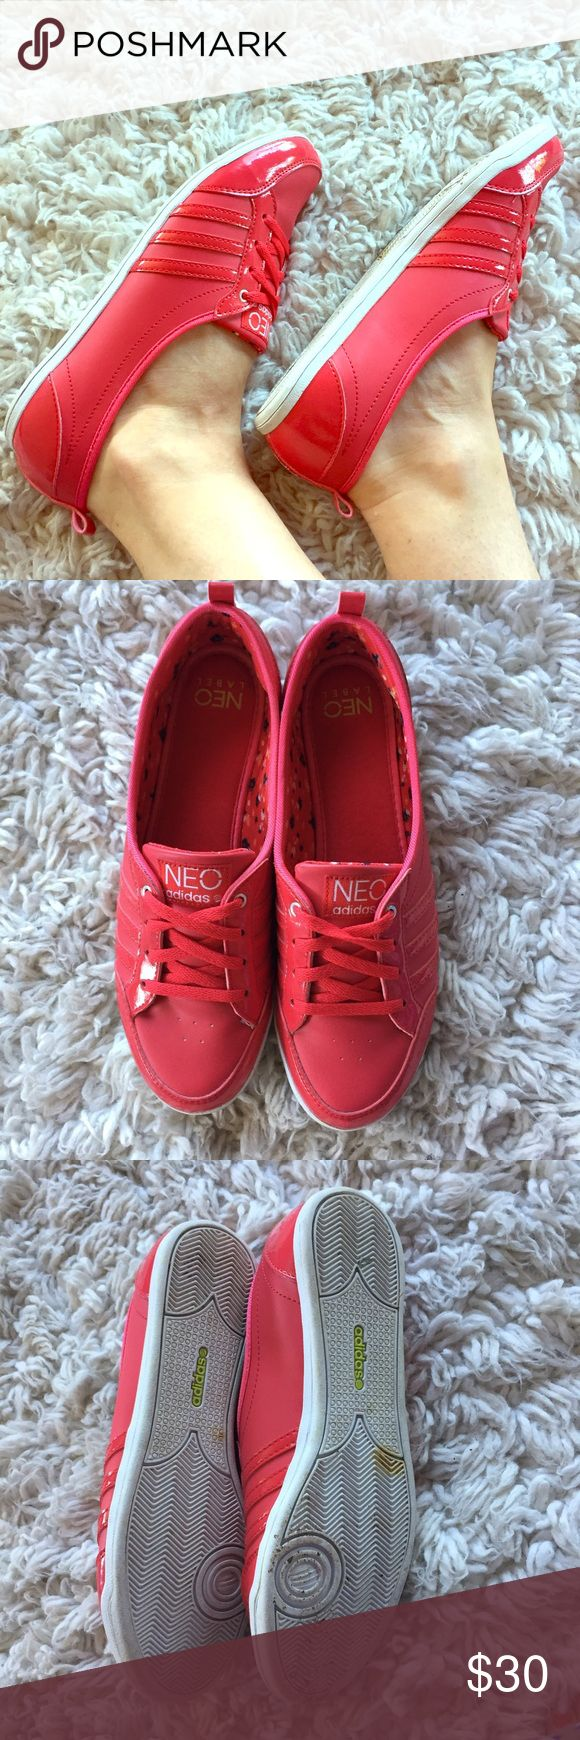 🔺Adidas Neo red sneakers 🔻 Cute red adidas Neo sneakers. The are like ballerinas super comfy and cute. I cut the laces to make them shorter. Wore them 5 times. I will clean the soles! Bought them in Germany 🇩🇪 Adidas Shoes Sneakers